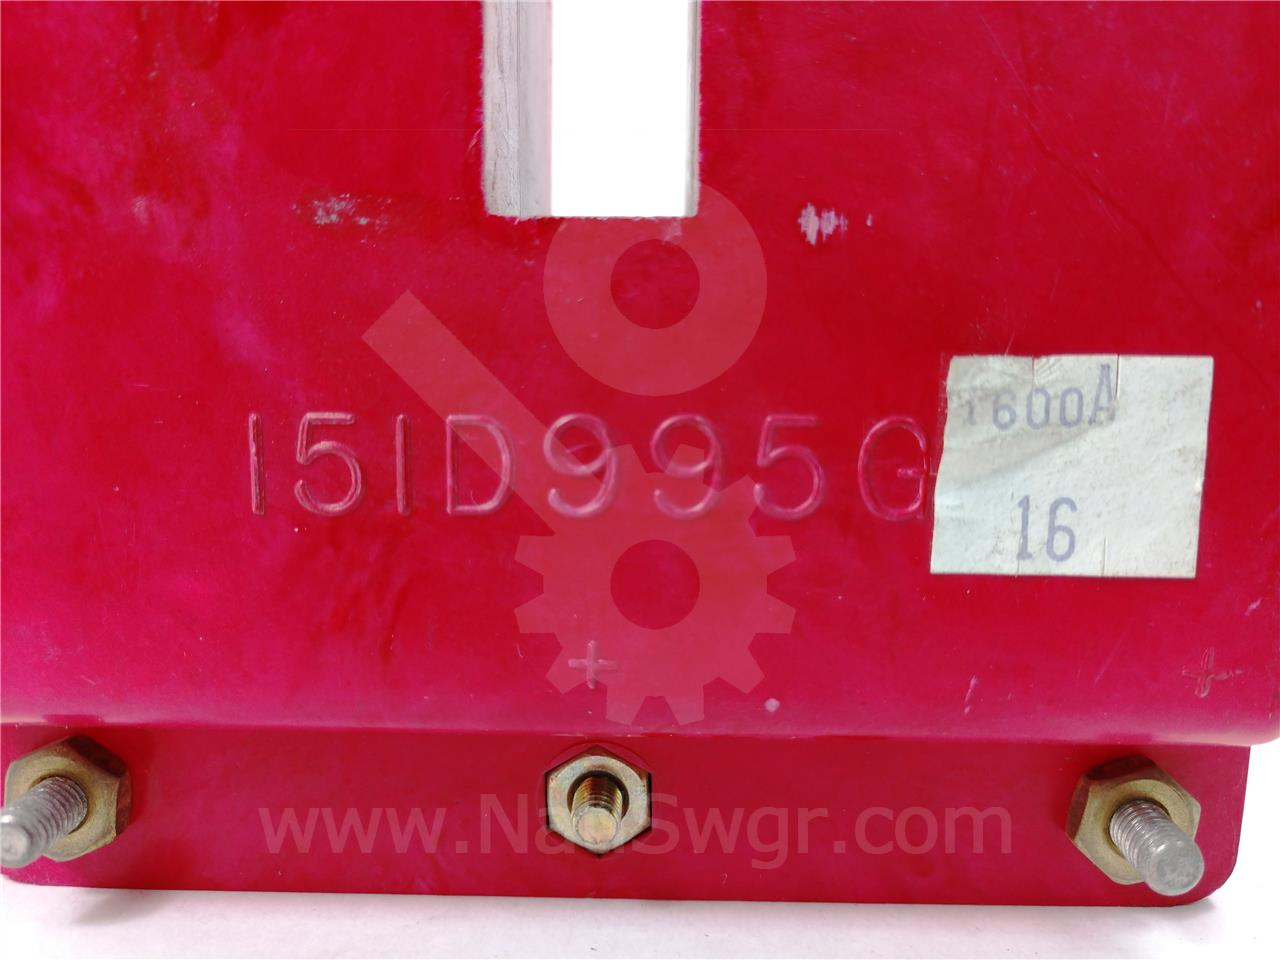 151D995G16 1600A Westinghouse CURRENT TRANSFORMER AMPTECTOR / DIGITRIP FOR DS / DSII